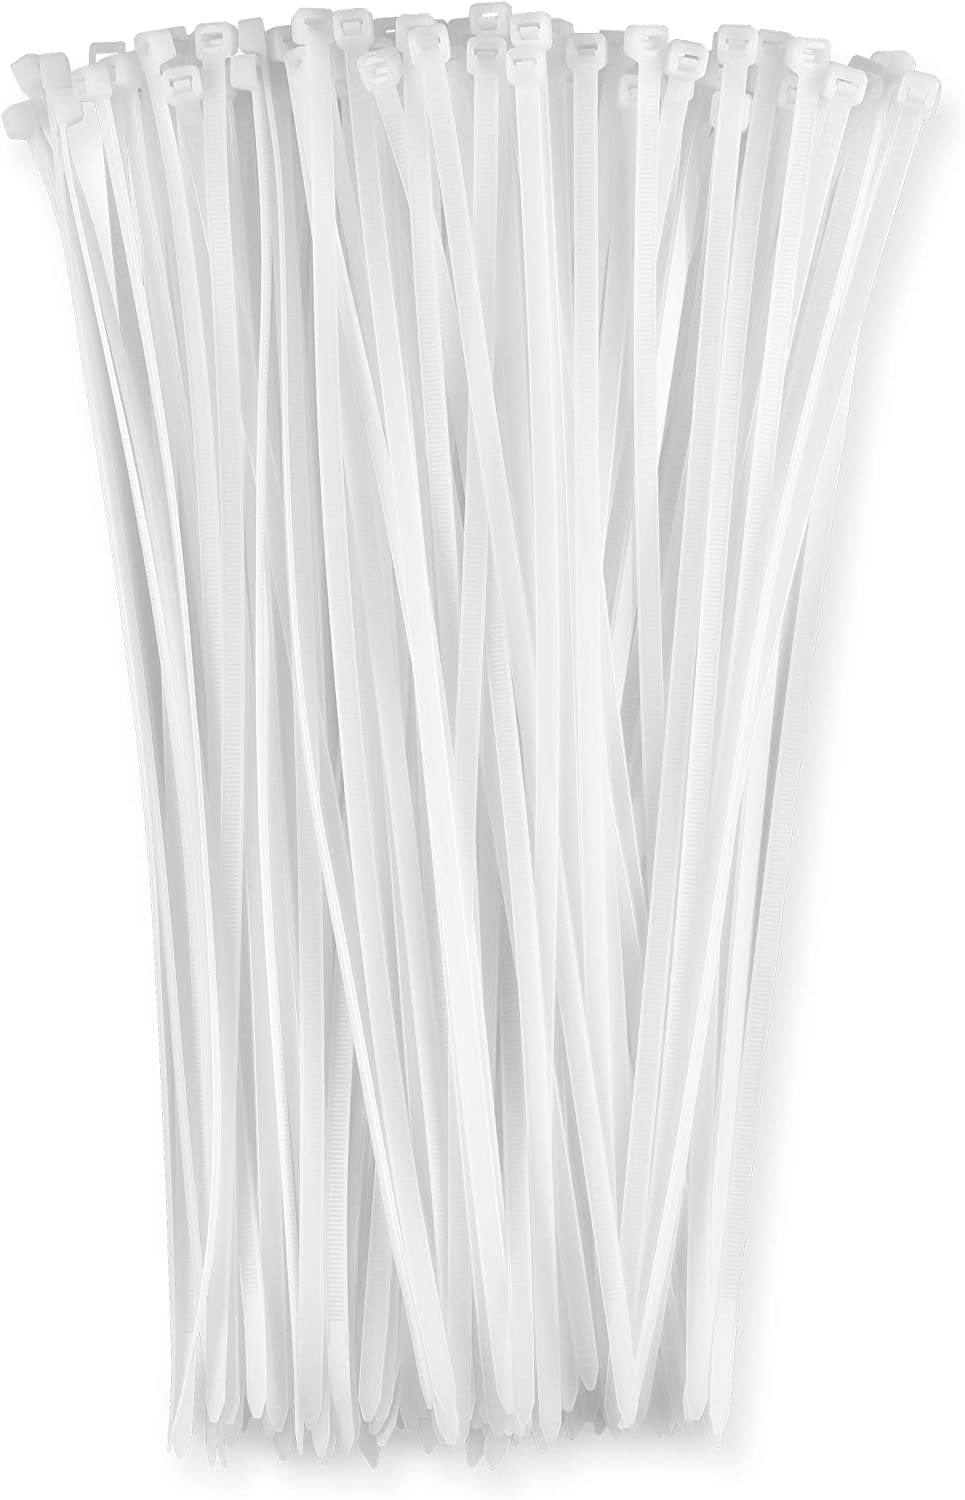 40lb Strength Nylon Cable Wire Ties 100 Pack 12 Inch Zip Ties Black By Bolt Dropper.